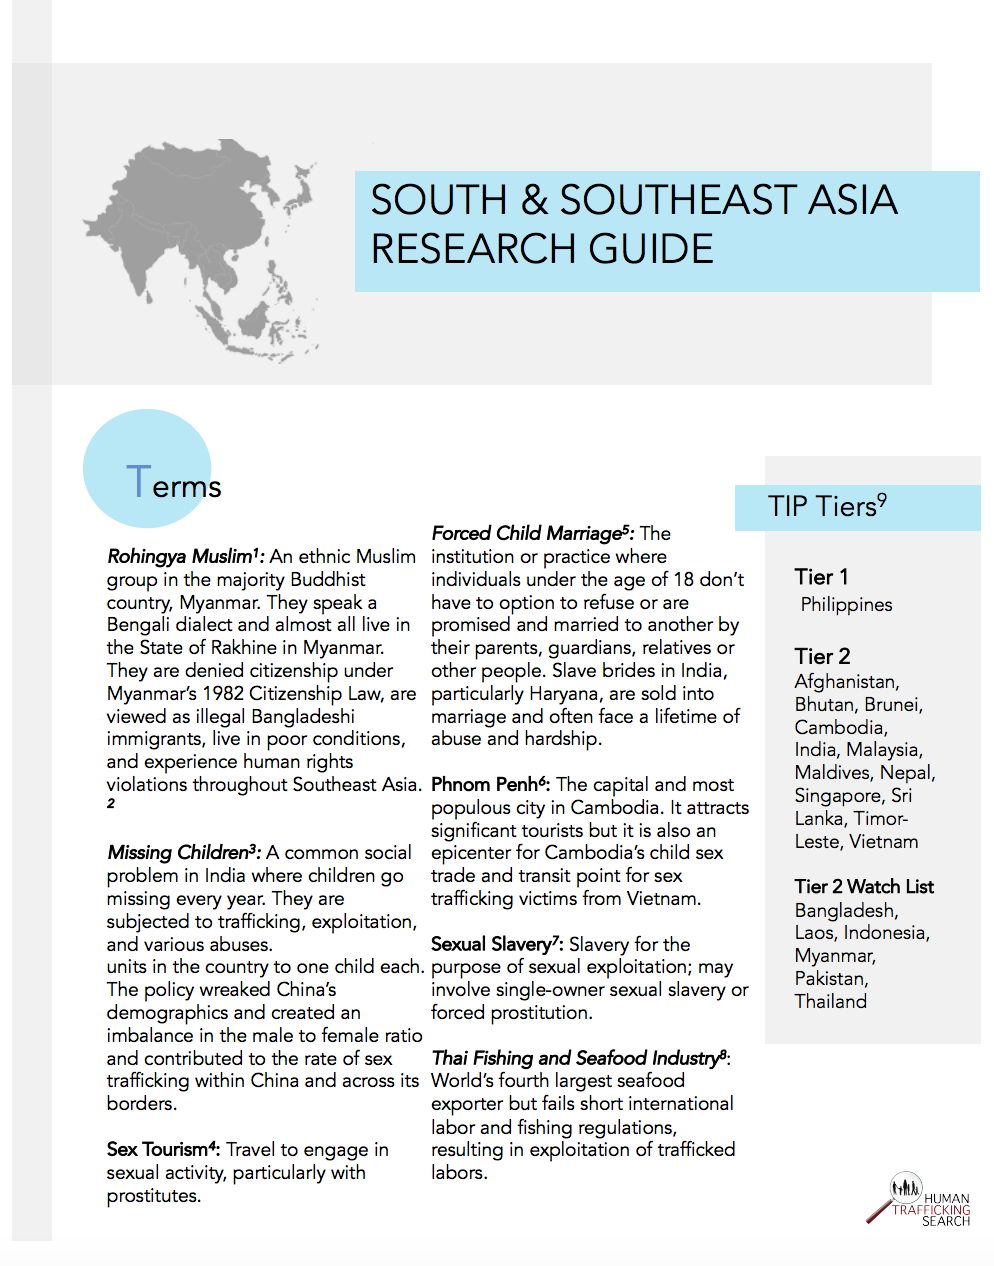 South and Southeast Asia Research Guide